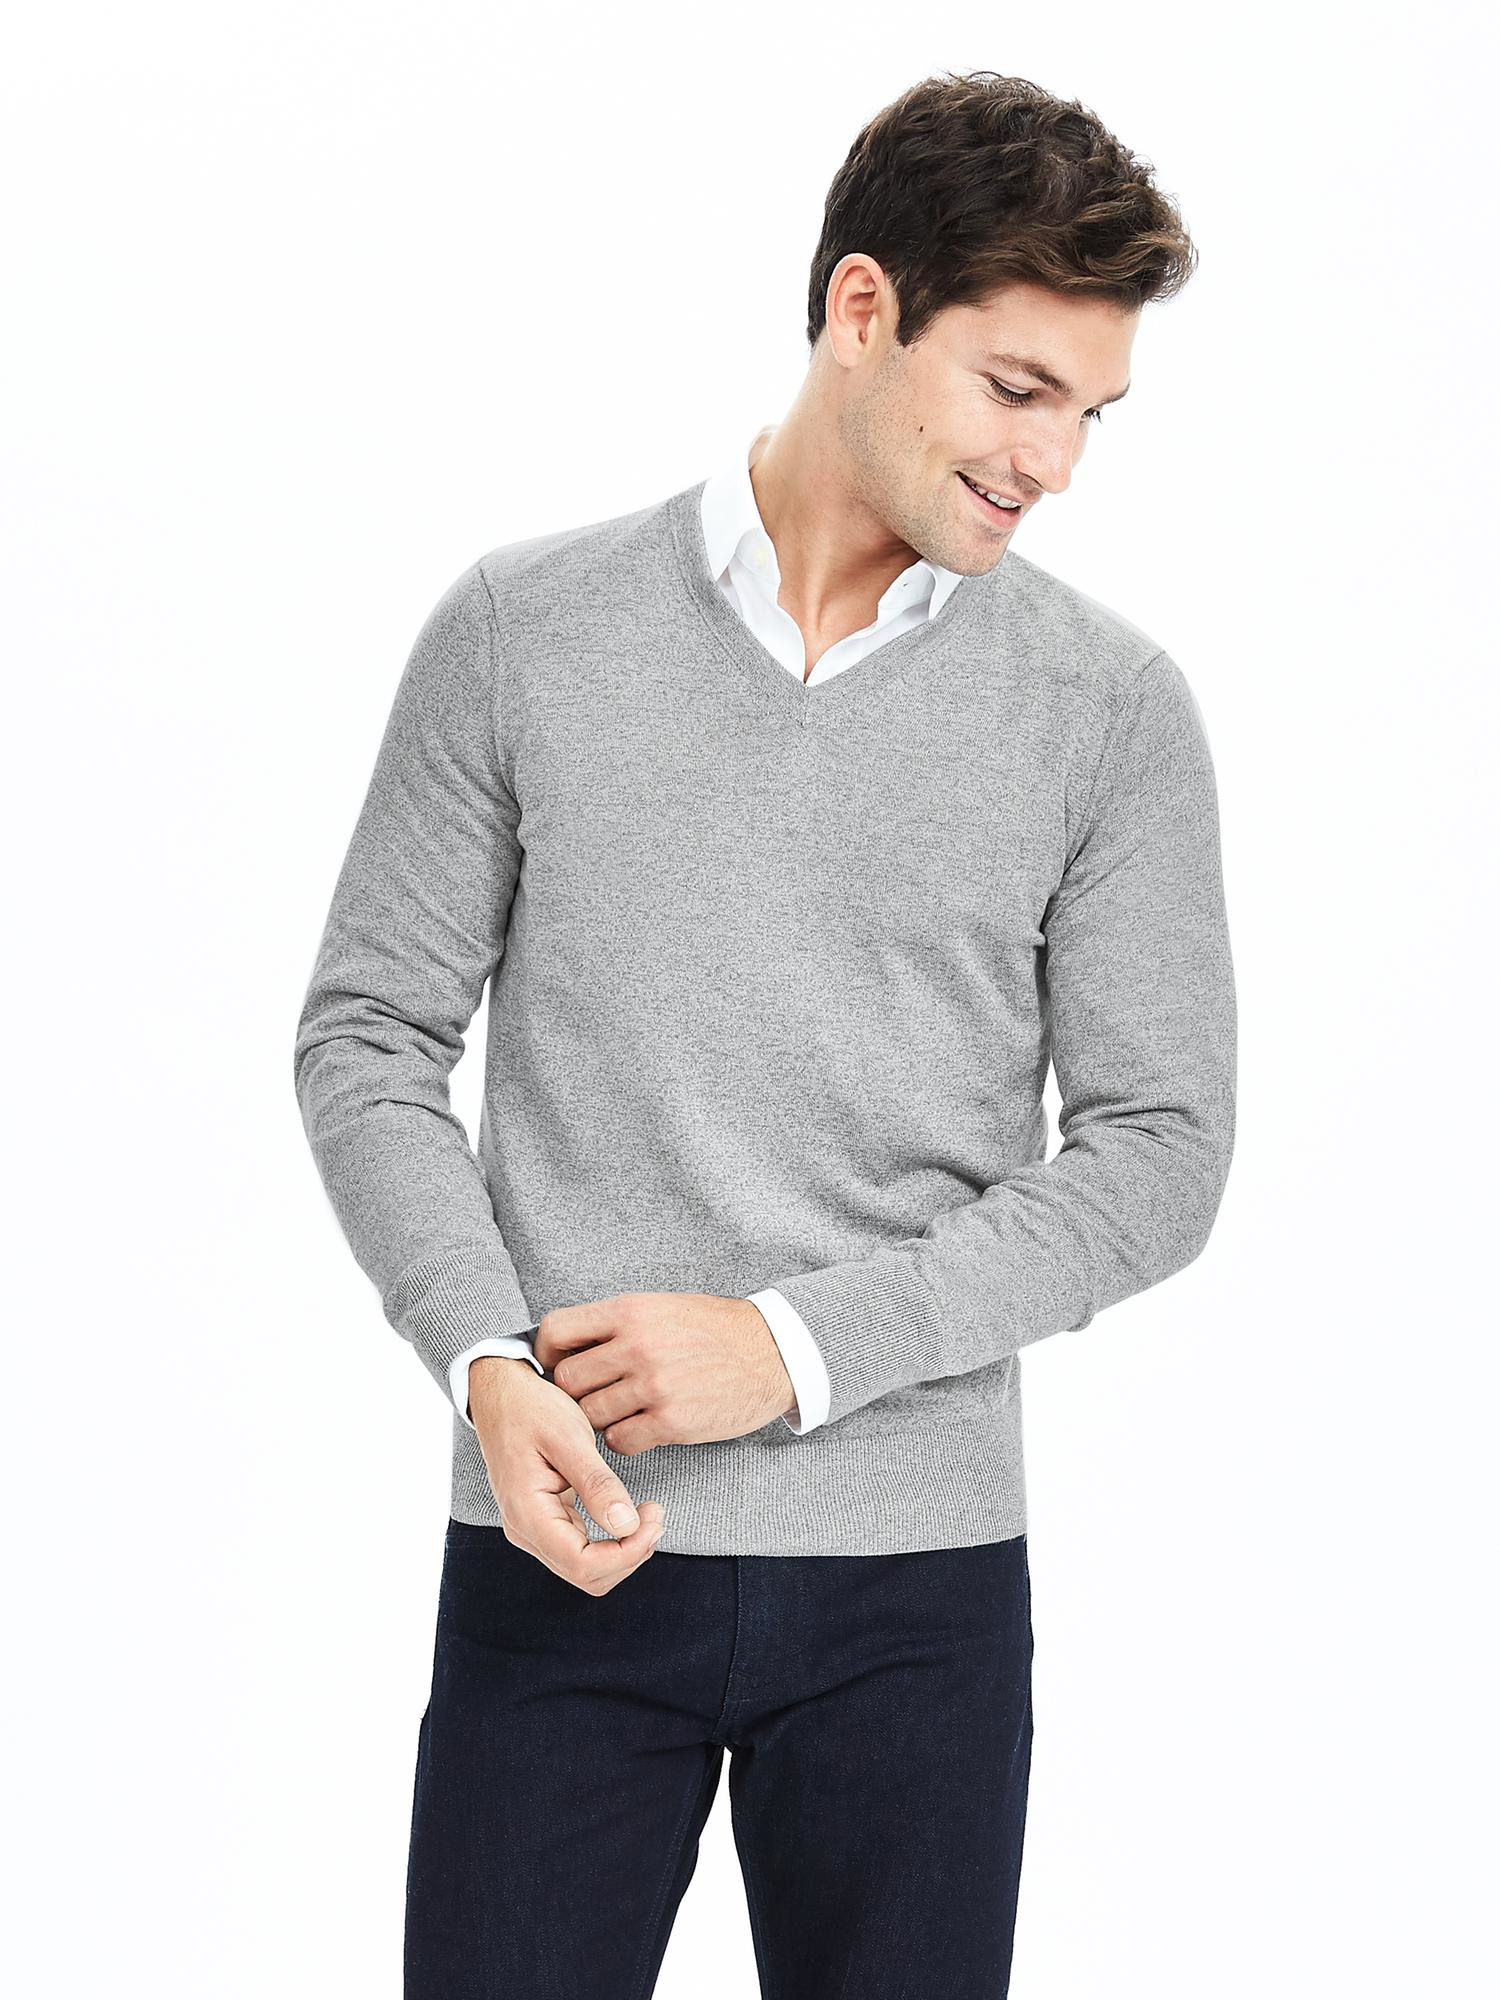 Find Banana Republic men's cashmere sweaters at ShopStyle. Shop the latest collection of Banana Republic men's cashmere sweaters from the most popular.